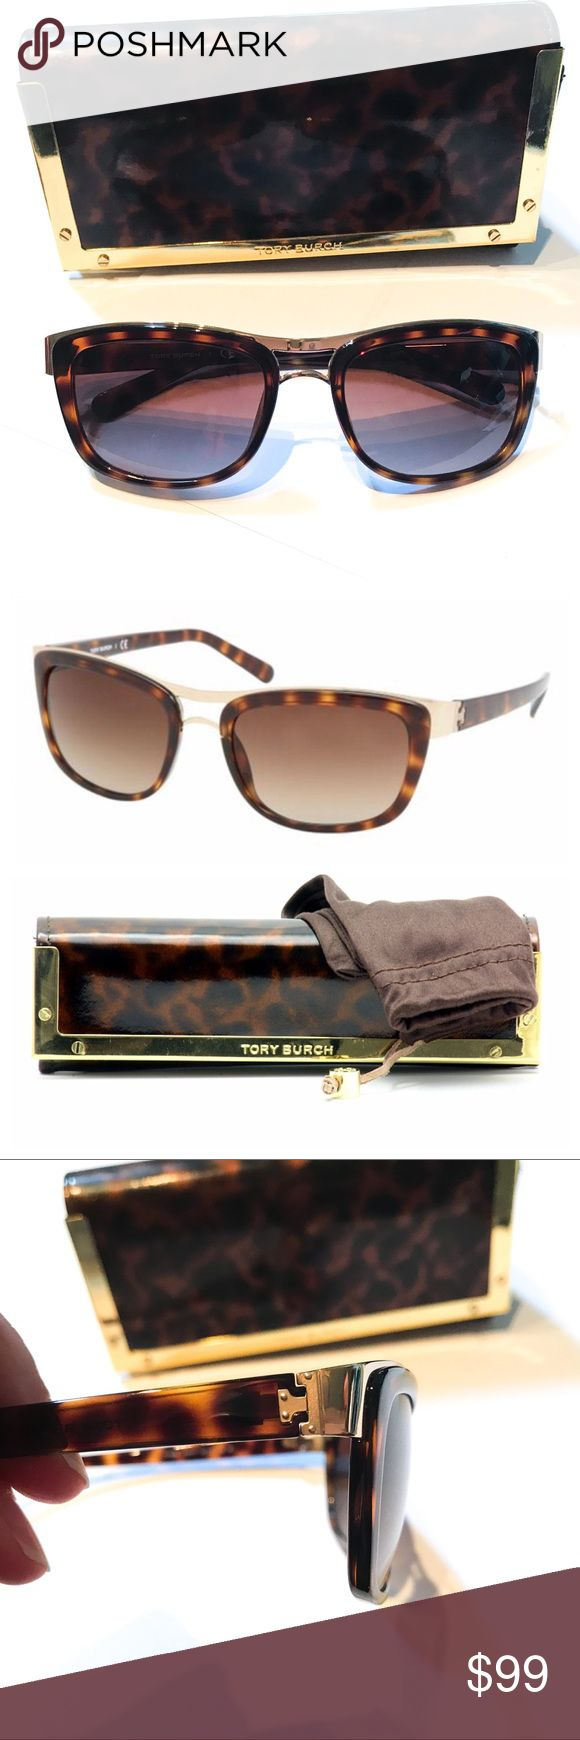 Tory Burch Sunglasses Here are the details for these Authentic Tory Burch Sunglasses:  color gold & brown tortoise, great condition no visible scratches, only worn a few times, comes with brown lense cleaning bag & matching gold/tortoise case (some scratches on case). Original price $200. Message me with questions. Bundle deal: buy 2 or more items from my closet & save 15% Tory Burch Accessories Sunglasses